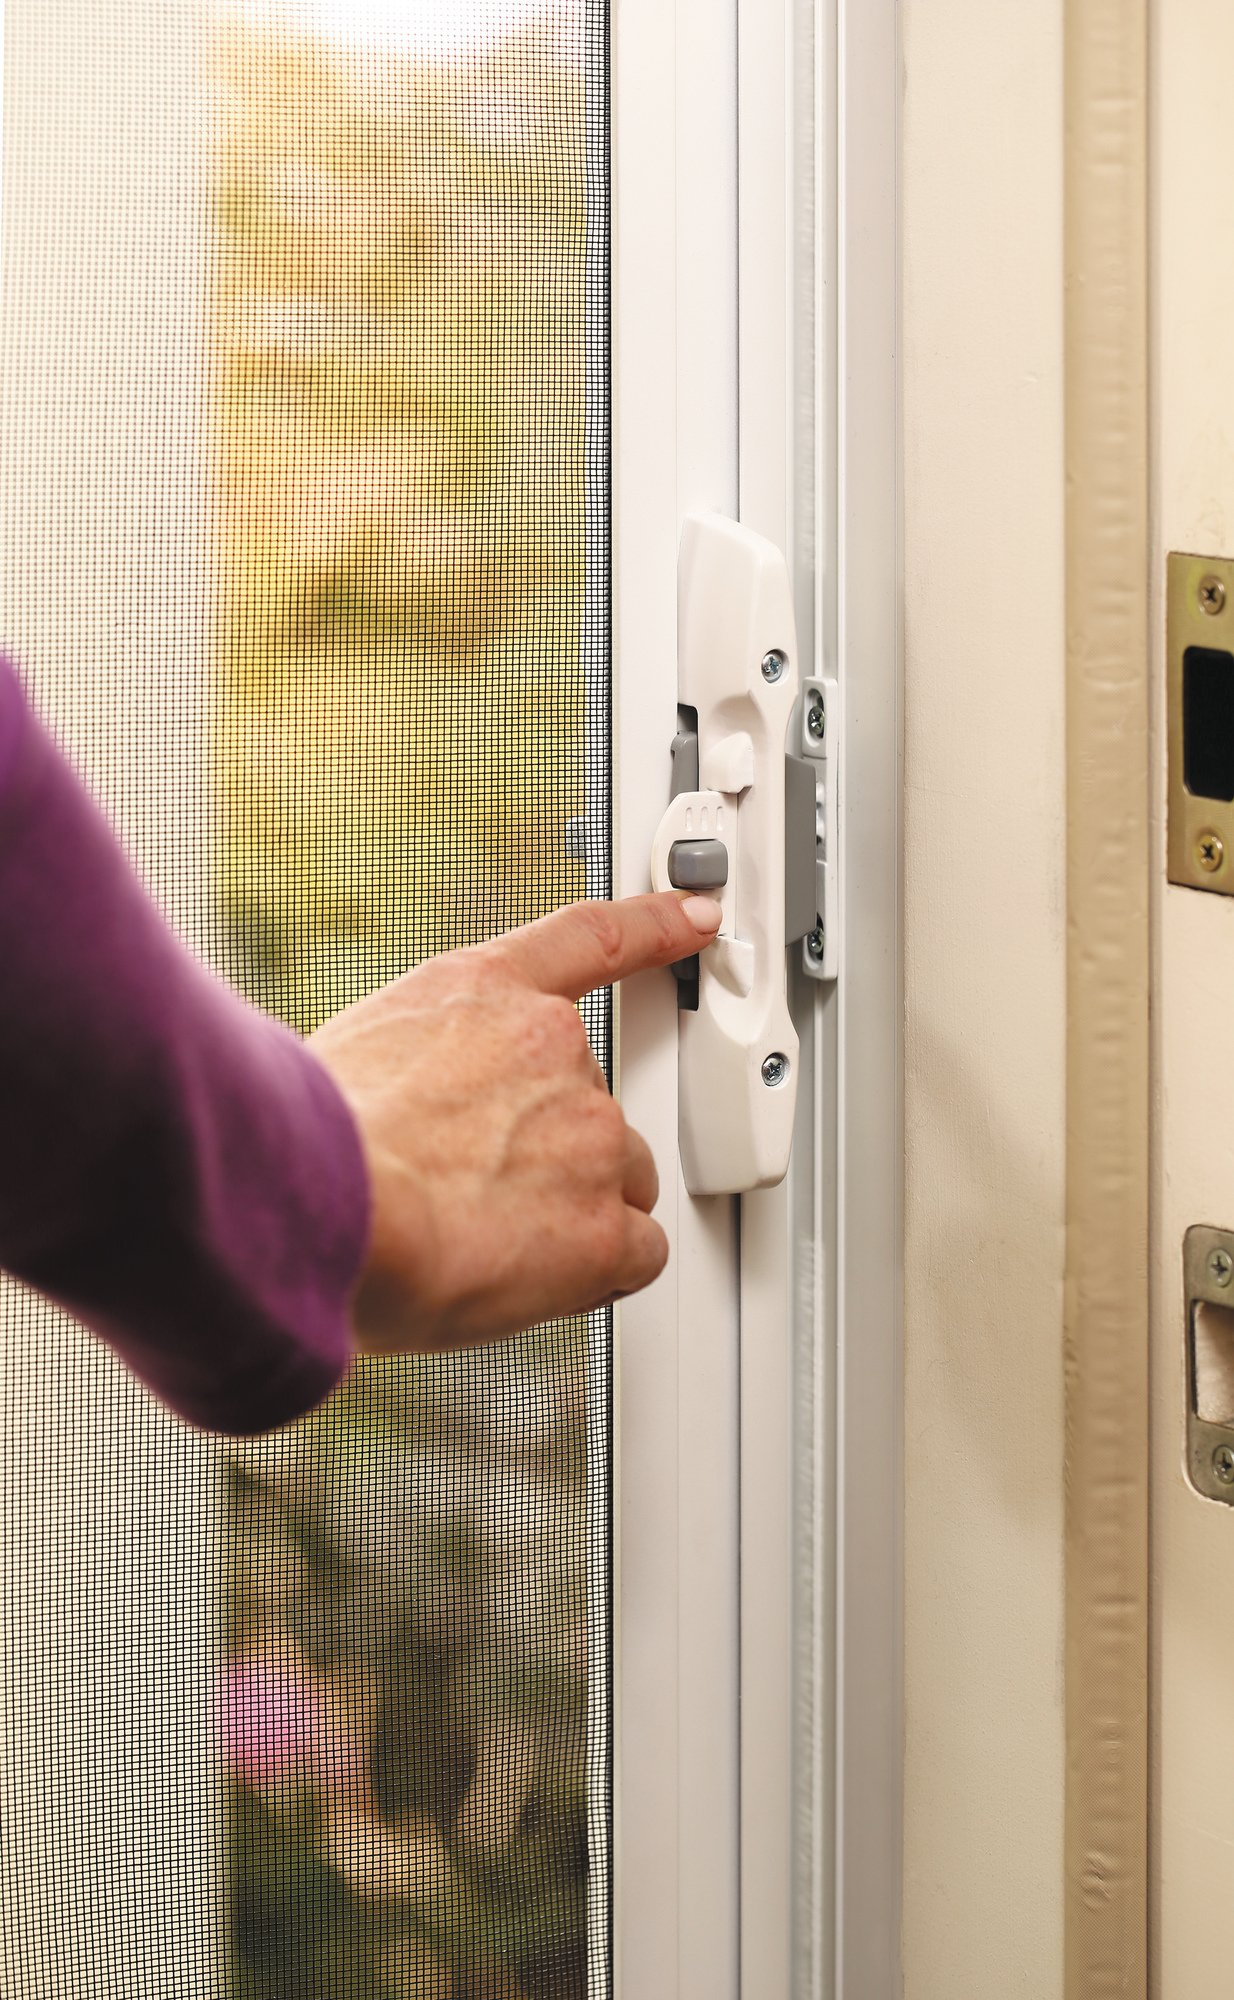 ODL Brisa Premium Retractable Screen for 78 in. Inswing/Outswing Hinged Doors - Bronze by ODL (Image #4)